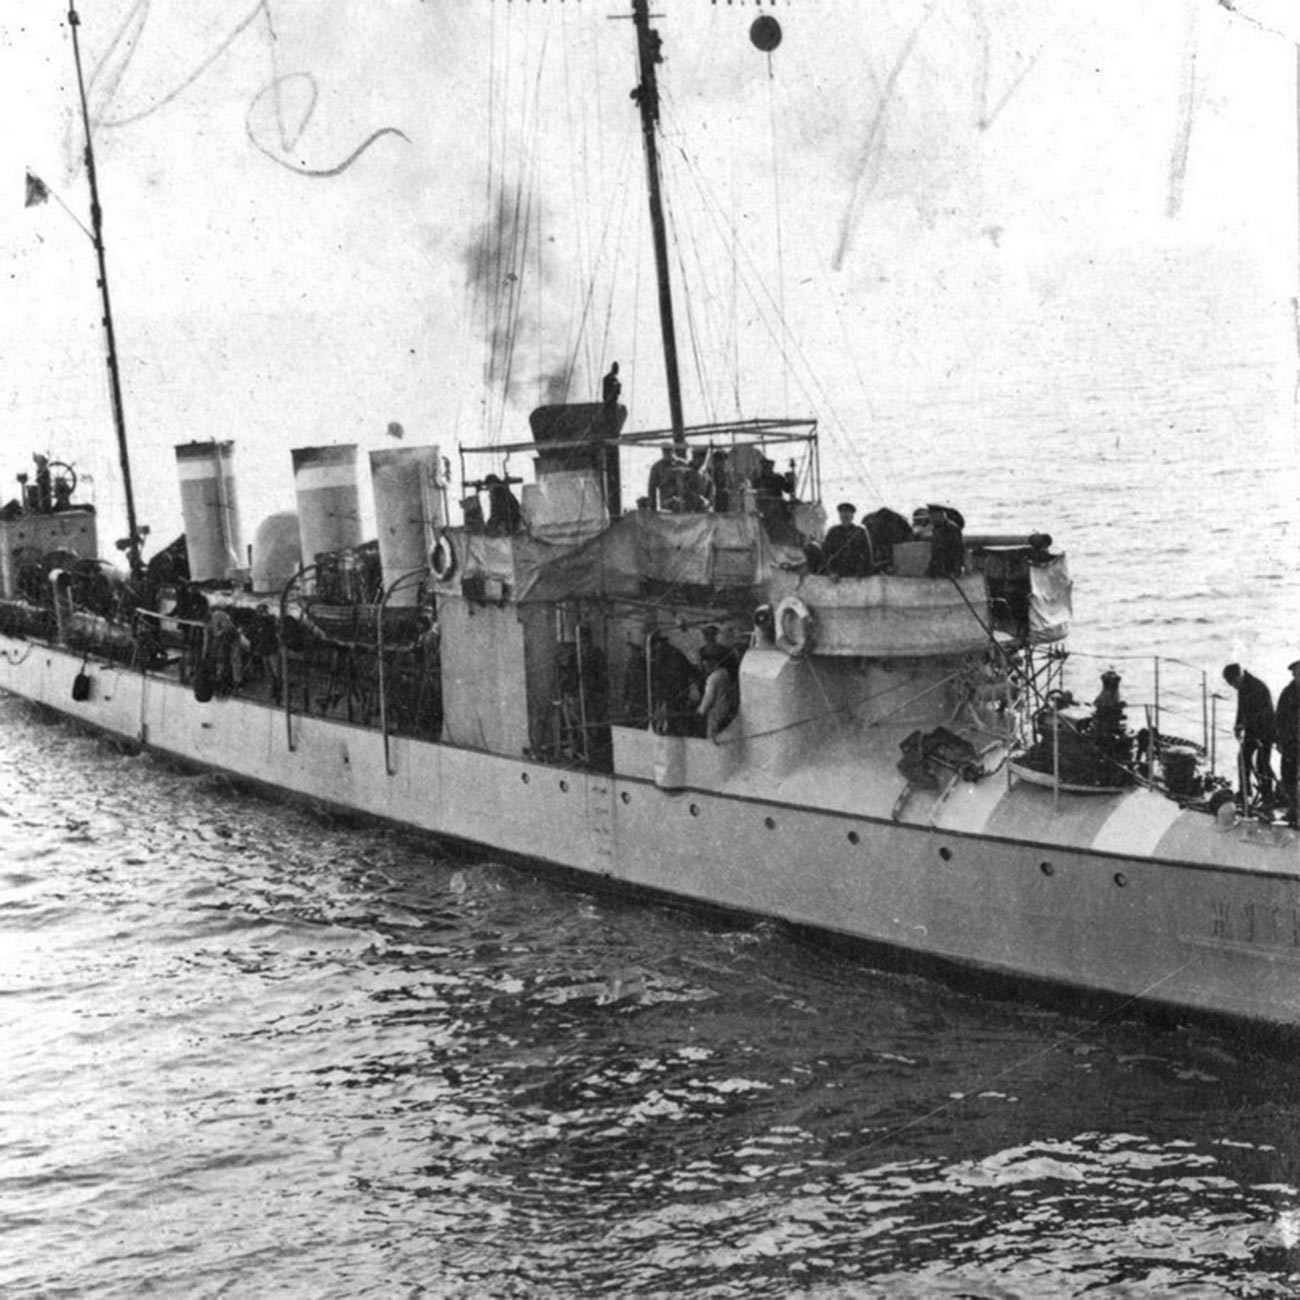 Destroyer Zhutky (Terrible) in 1915.